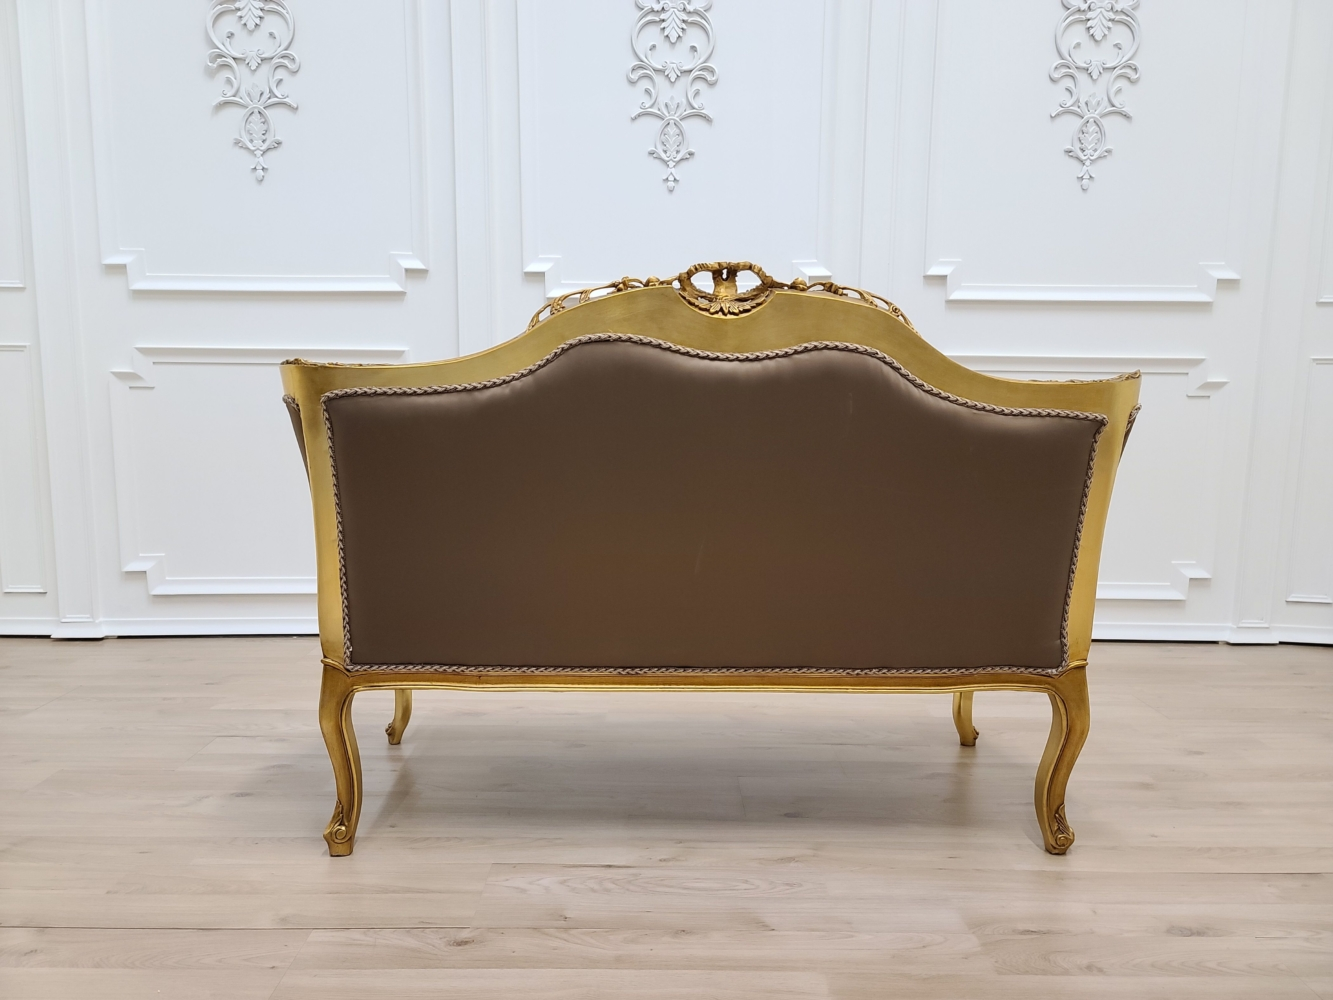 French Loveseat/ Gold Leaf Hand/ Carved Wood Frame/ Tufted Peanut Brown Satin Upholstered